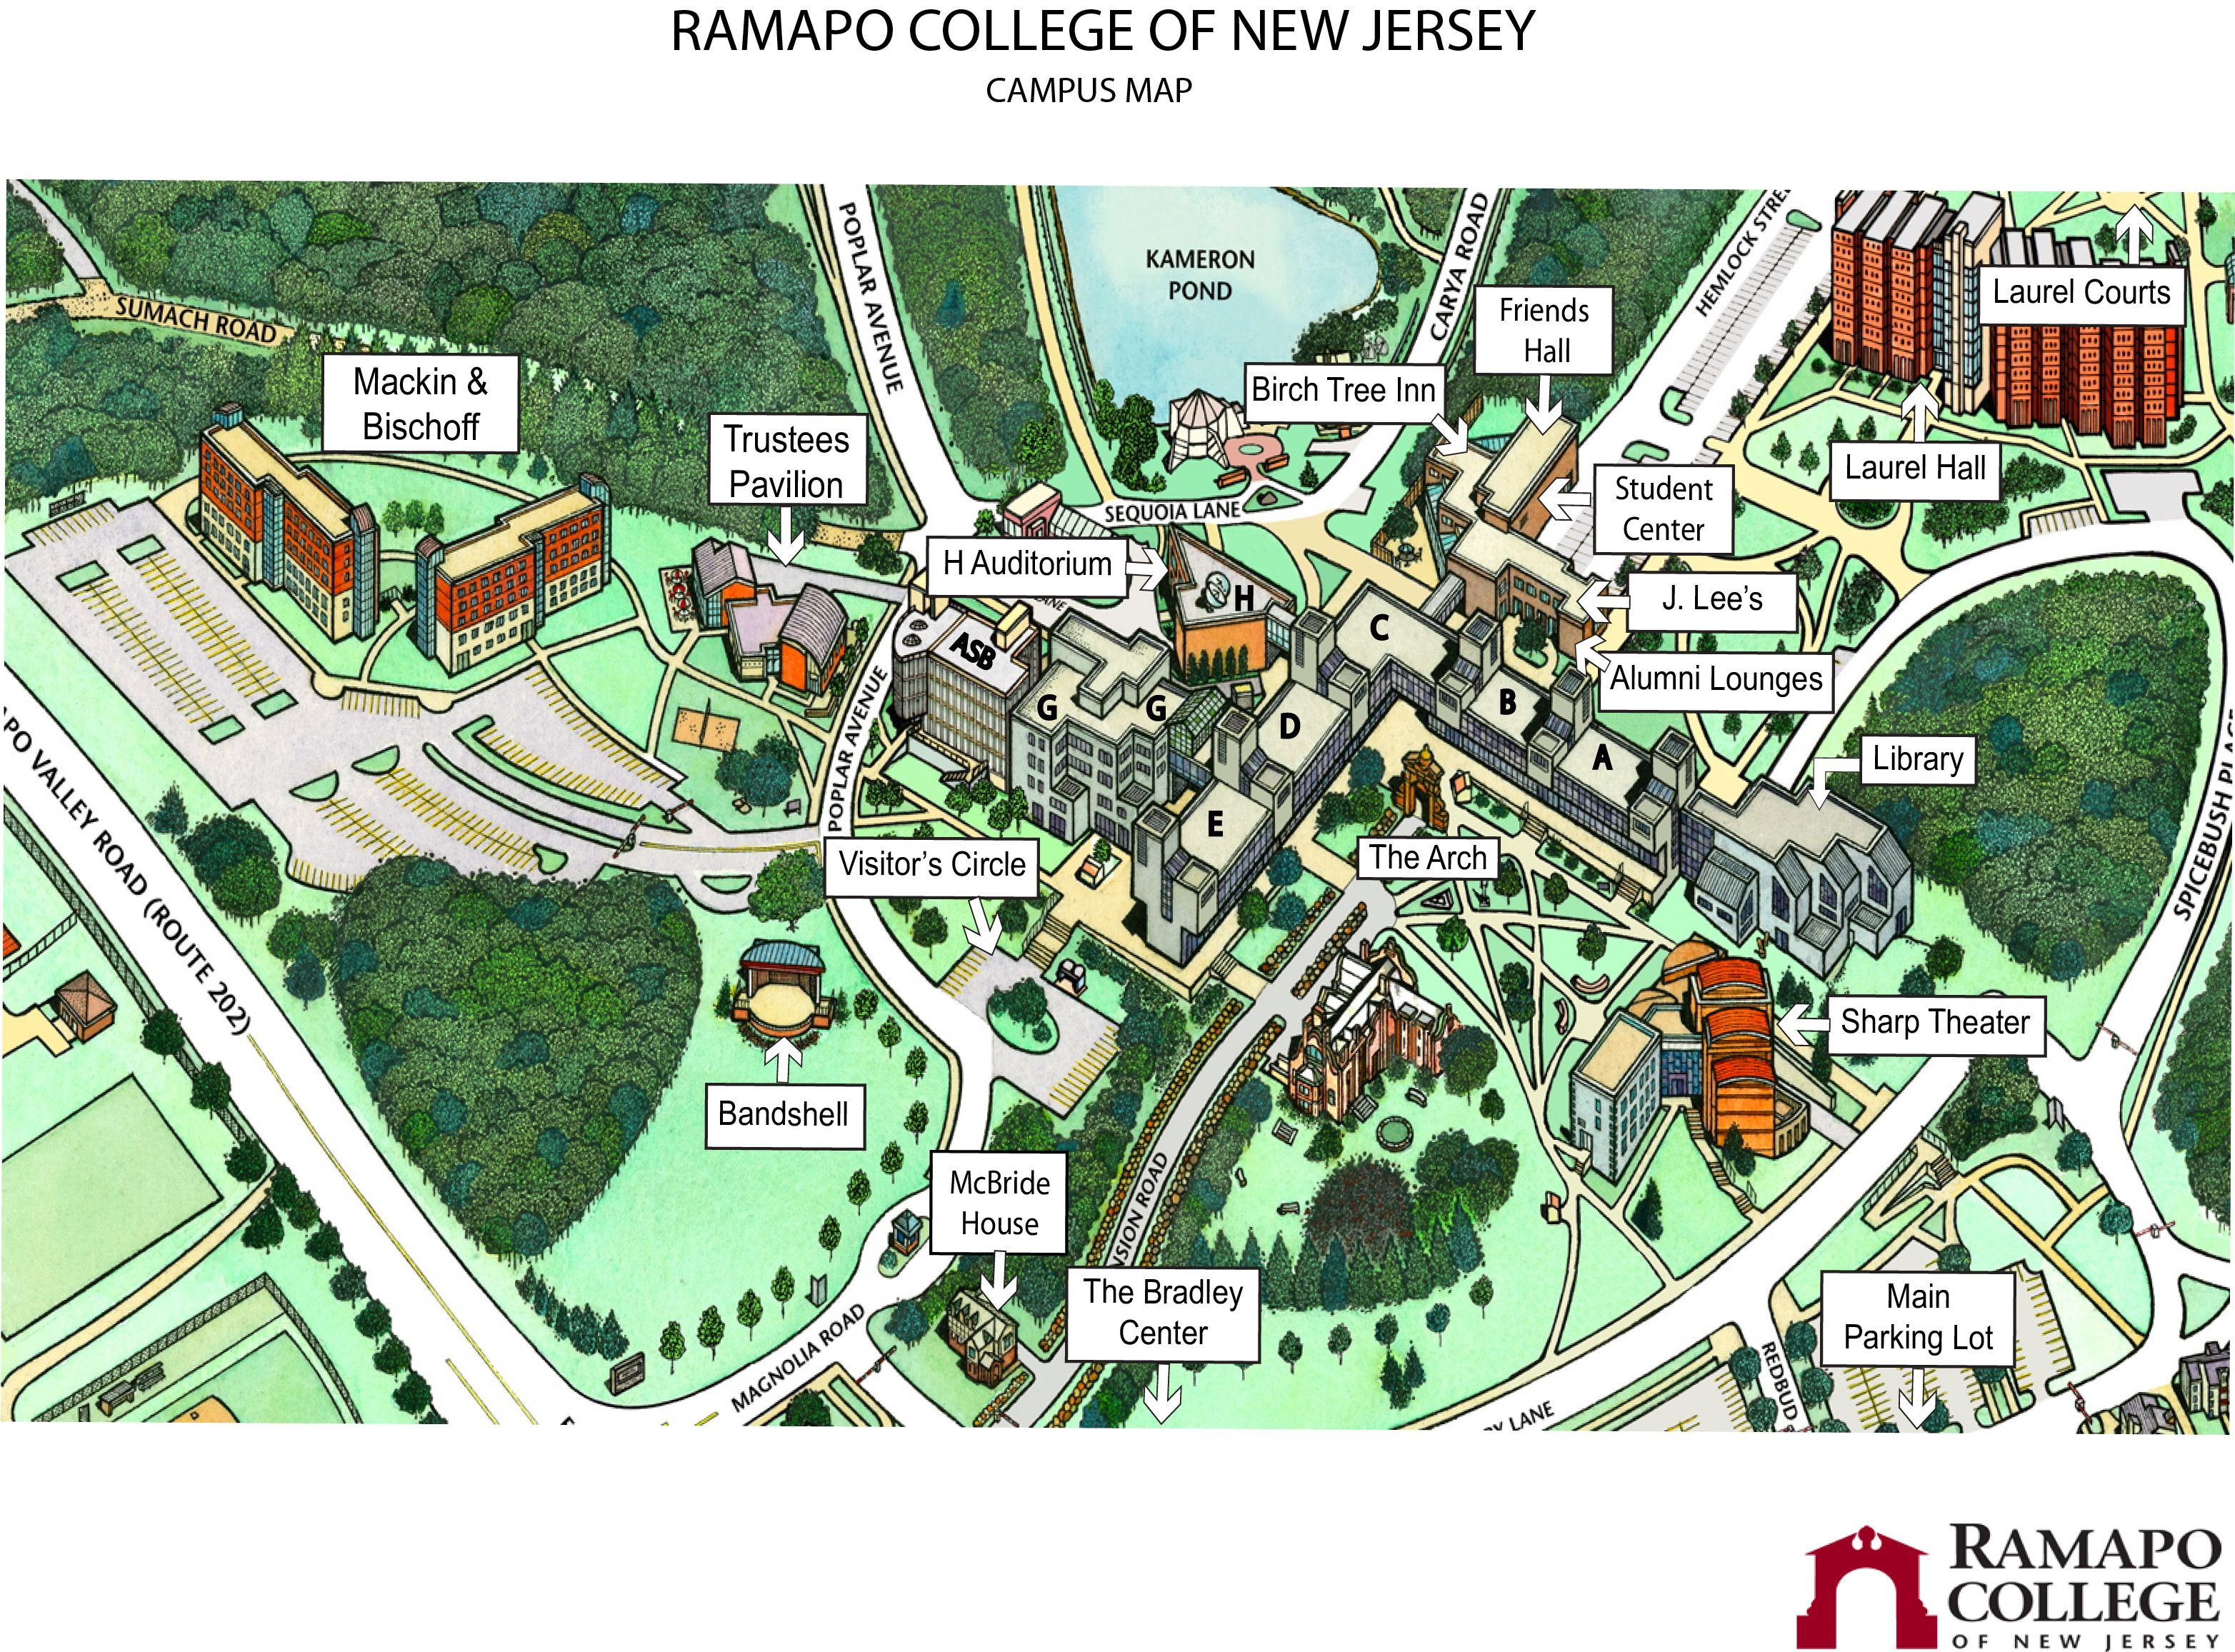 27 best images about College Planning Board - Ramapo College on ...